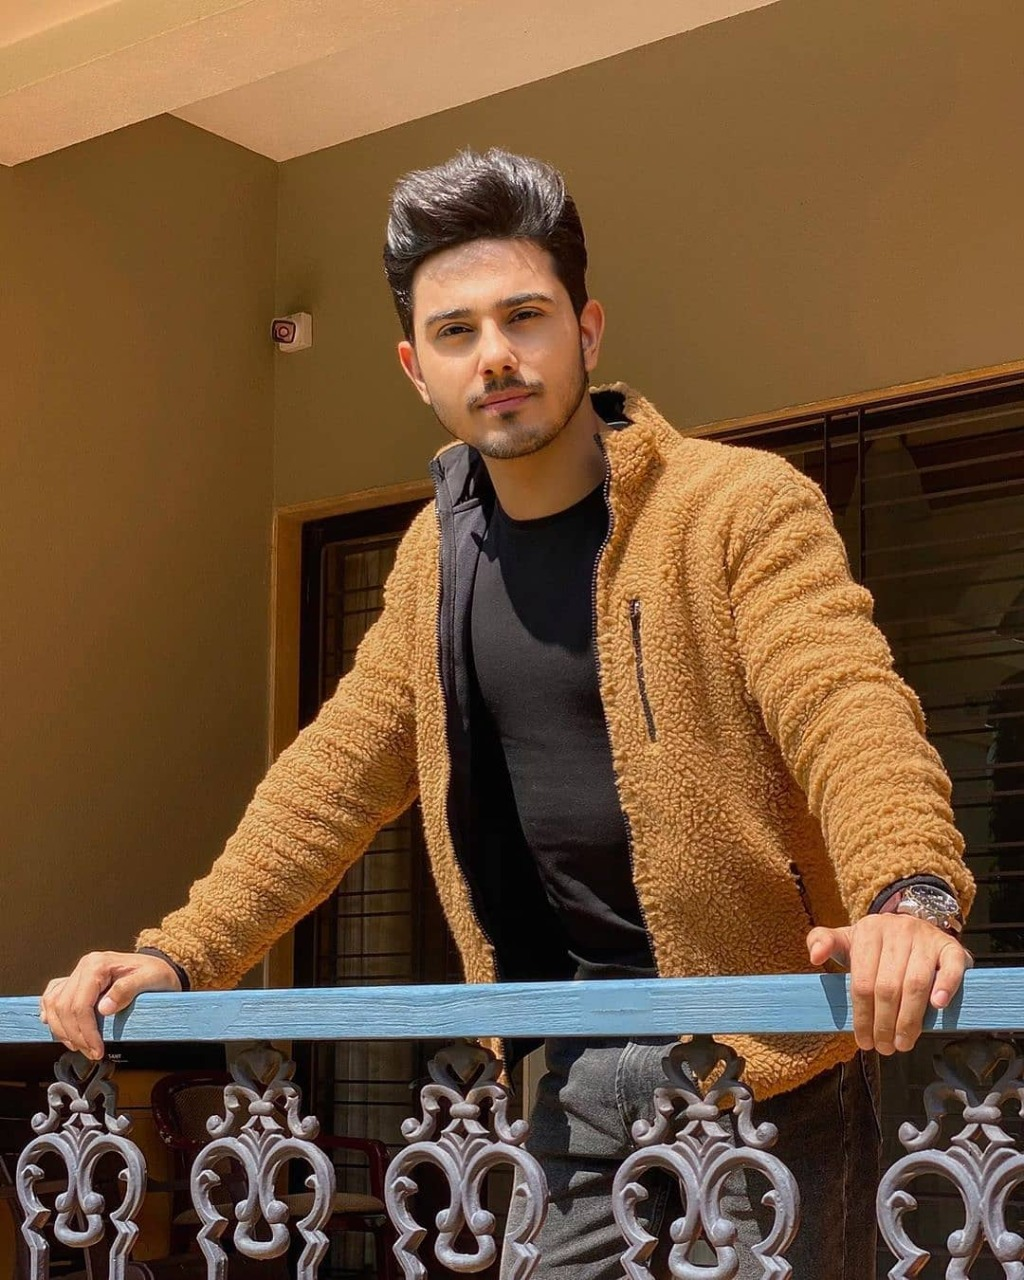 Sunny Chopra a social media influencer with great power and excellence